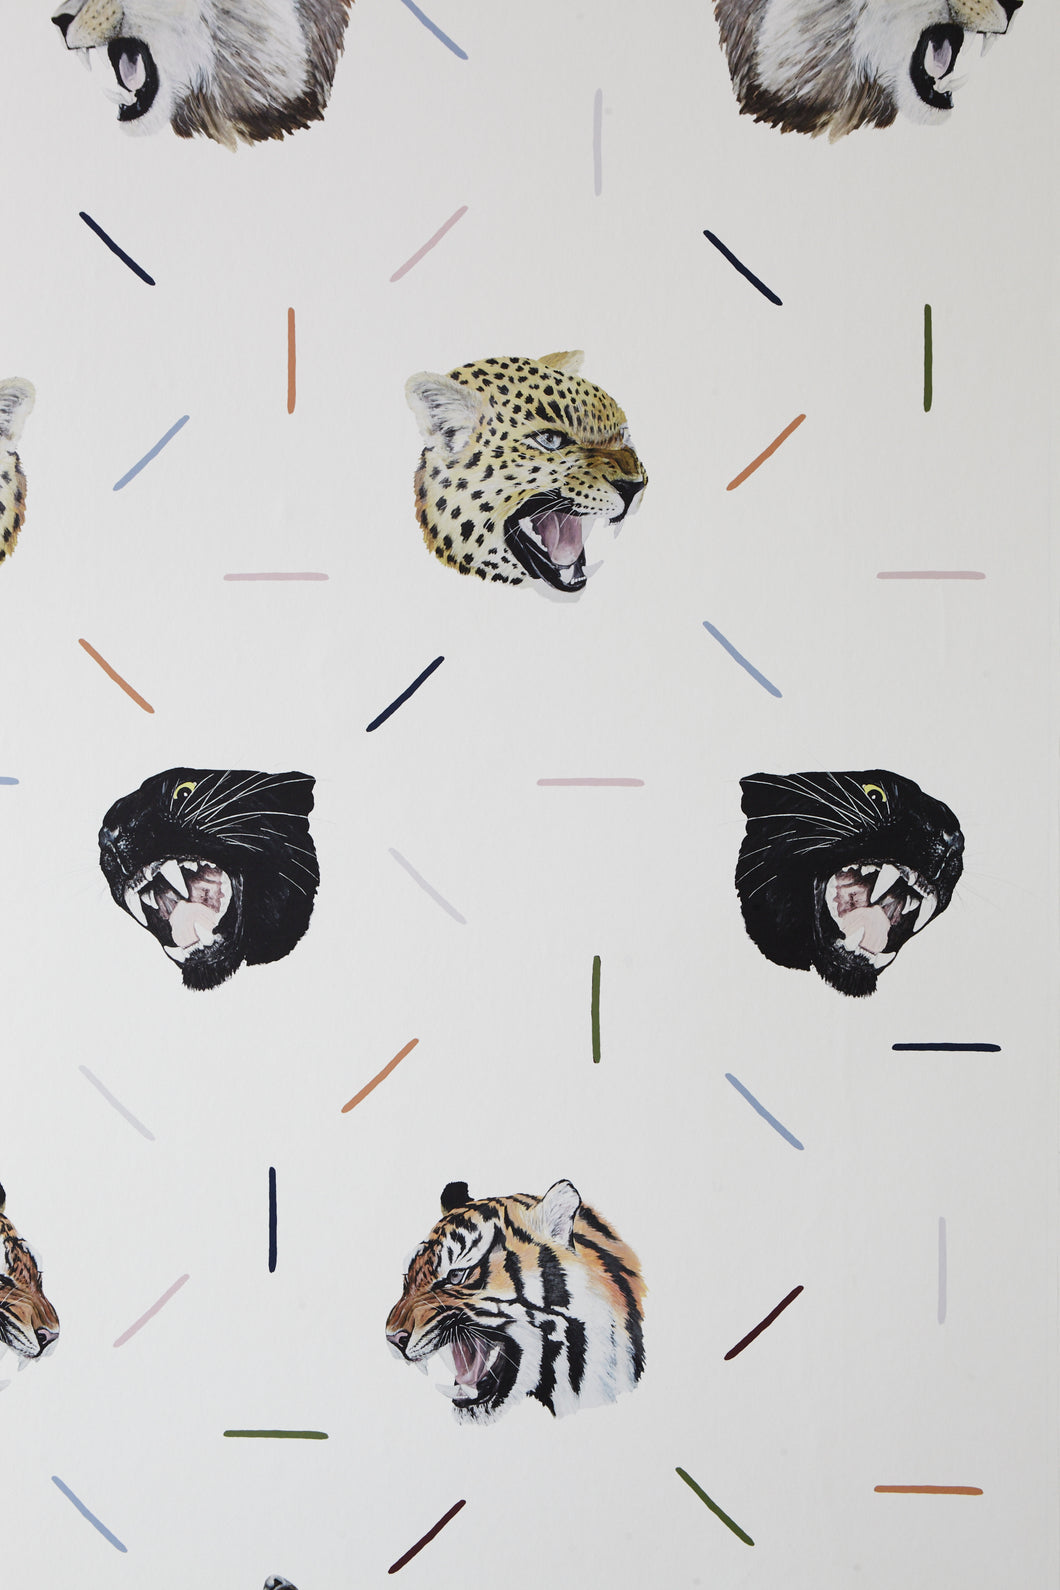 kids and teenagers will love this animal wallpaper! safari animals in your bedroom!